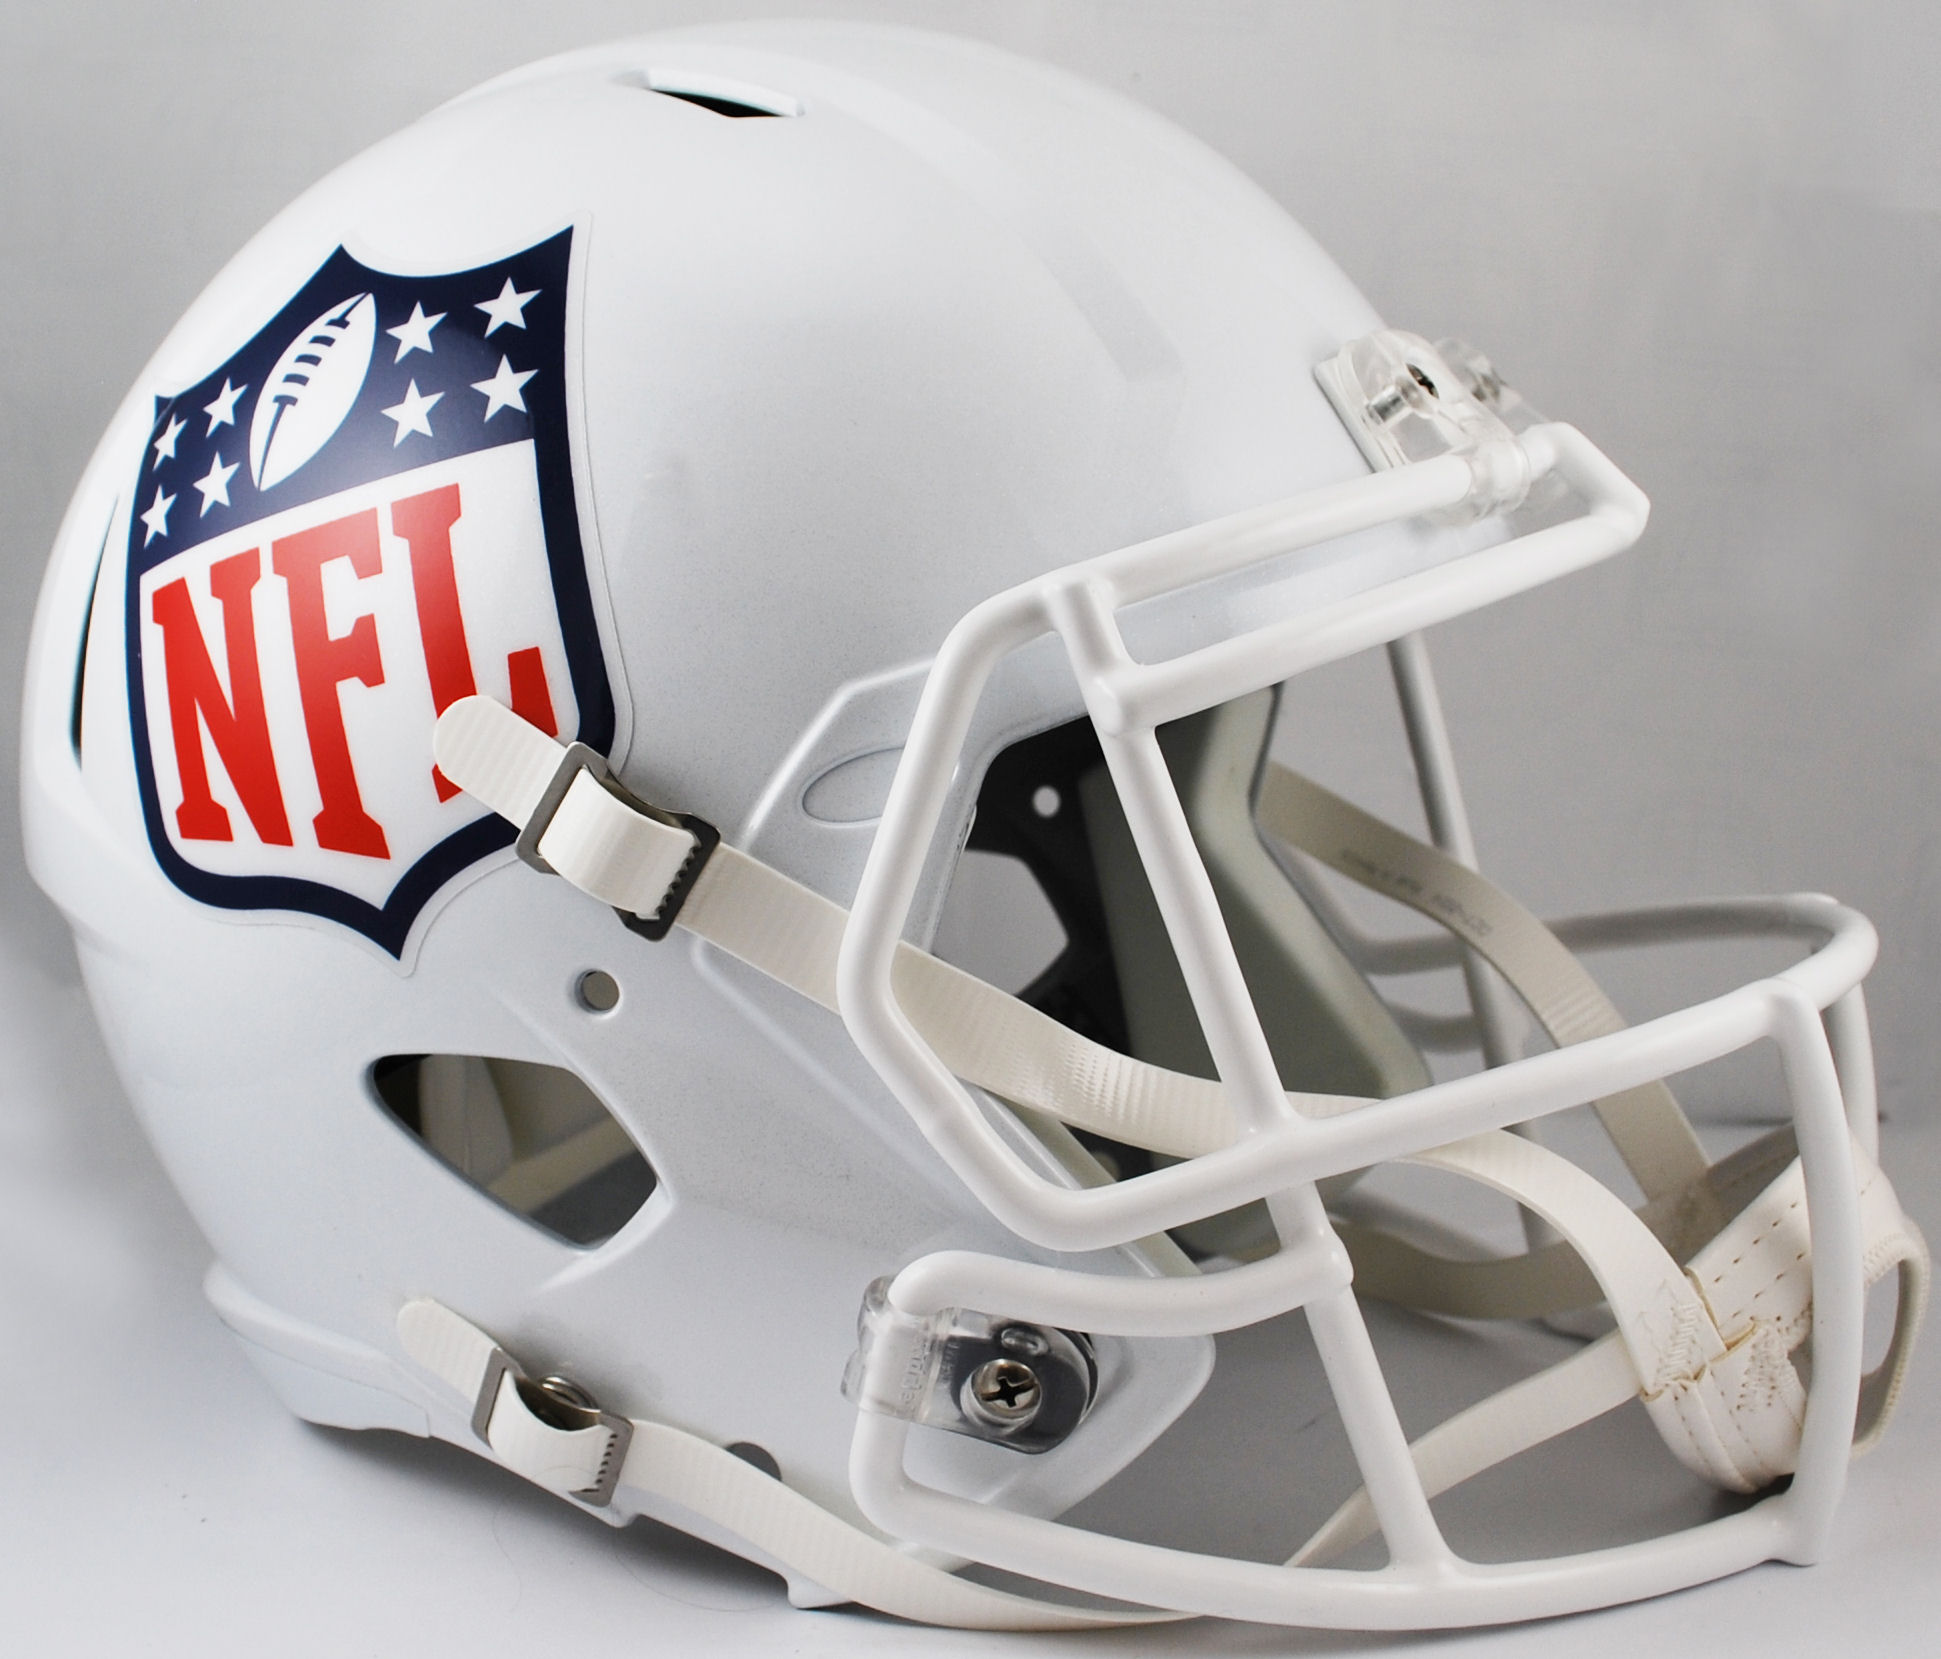 NFL Shield Speed Replica Football Helmet